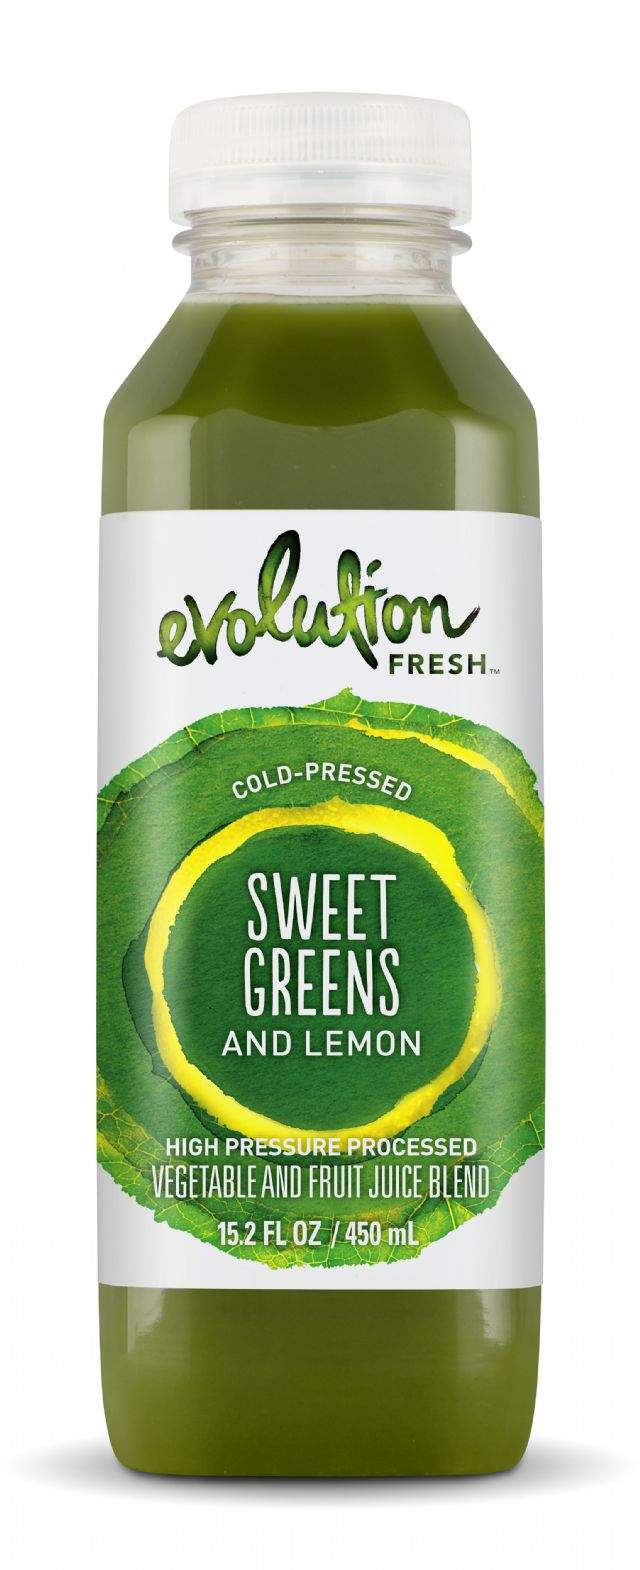 Evolution Fresh: SweetGreensLemon copy